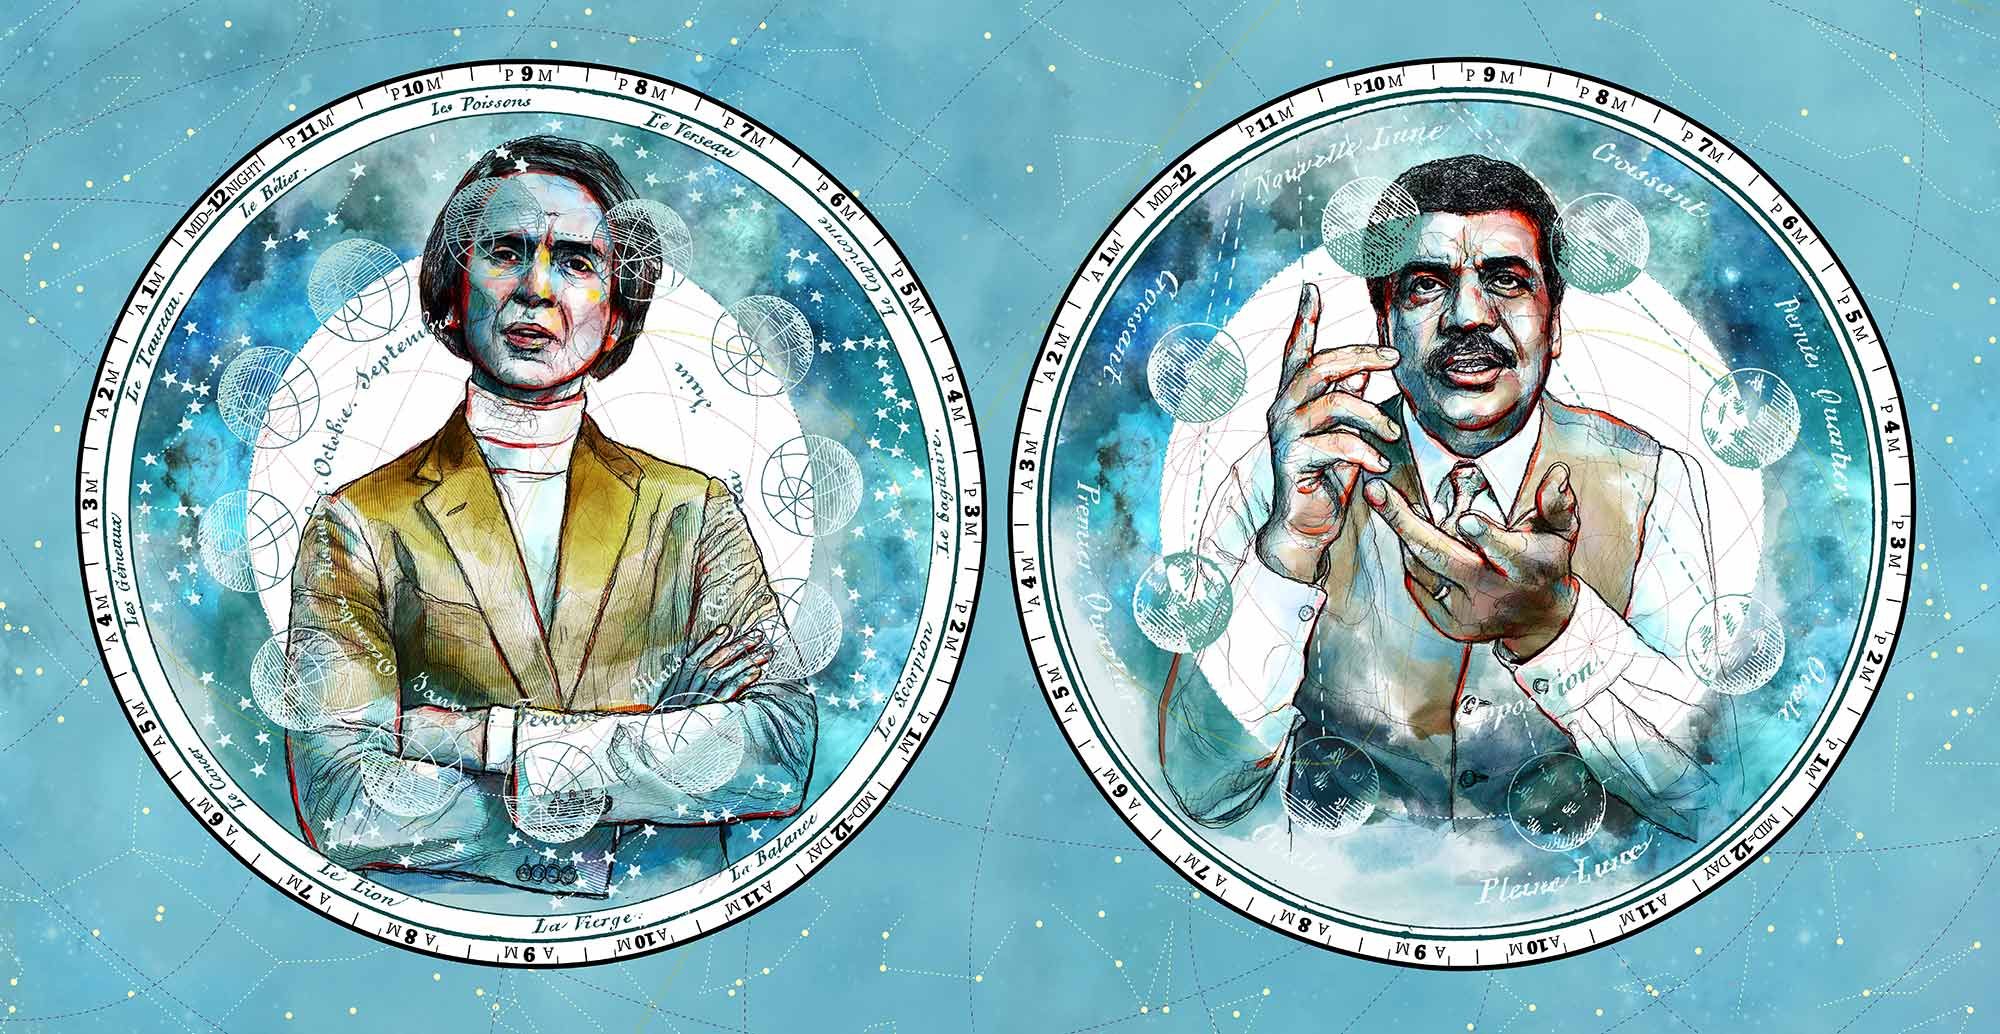 Cosmos: Carl Sagan and Neil deGrasse Tyson illustration. Mario Jodra. Mixed media. Pencil on paper + Digital